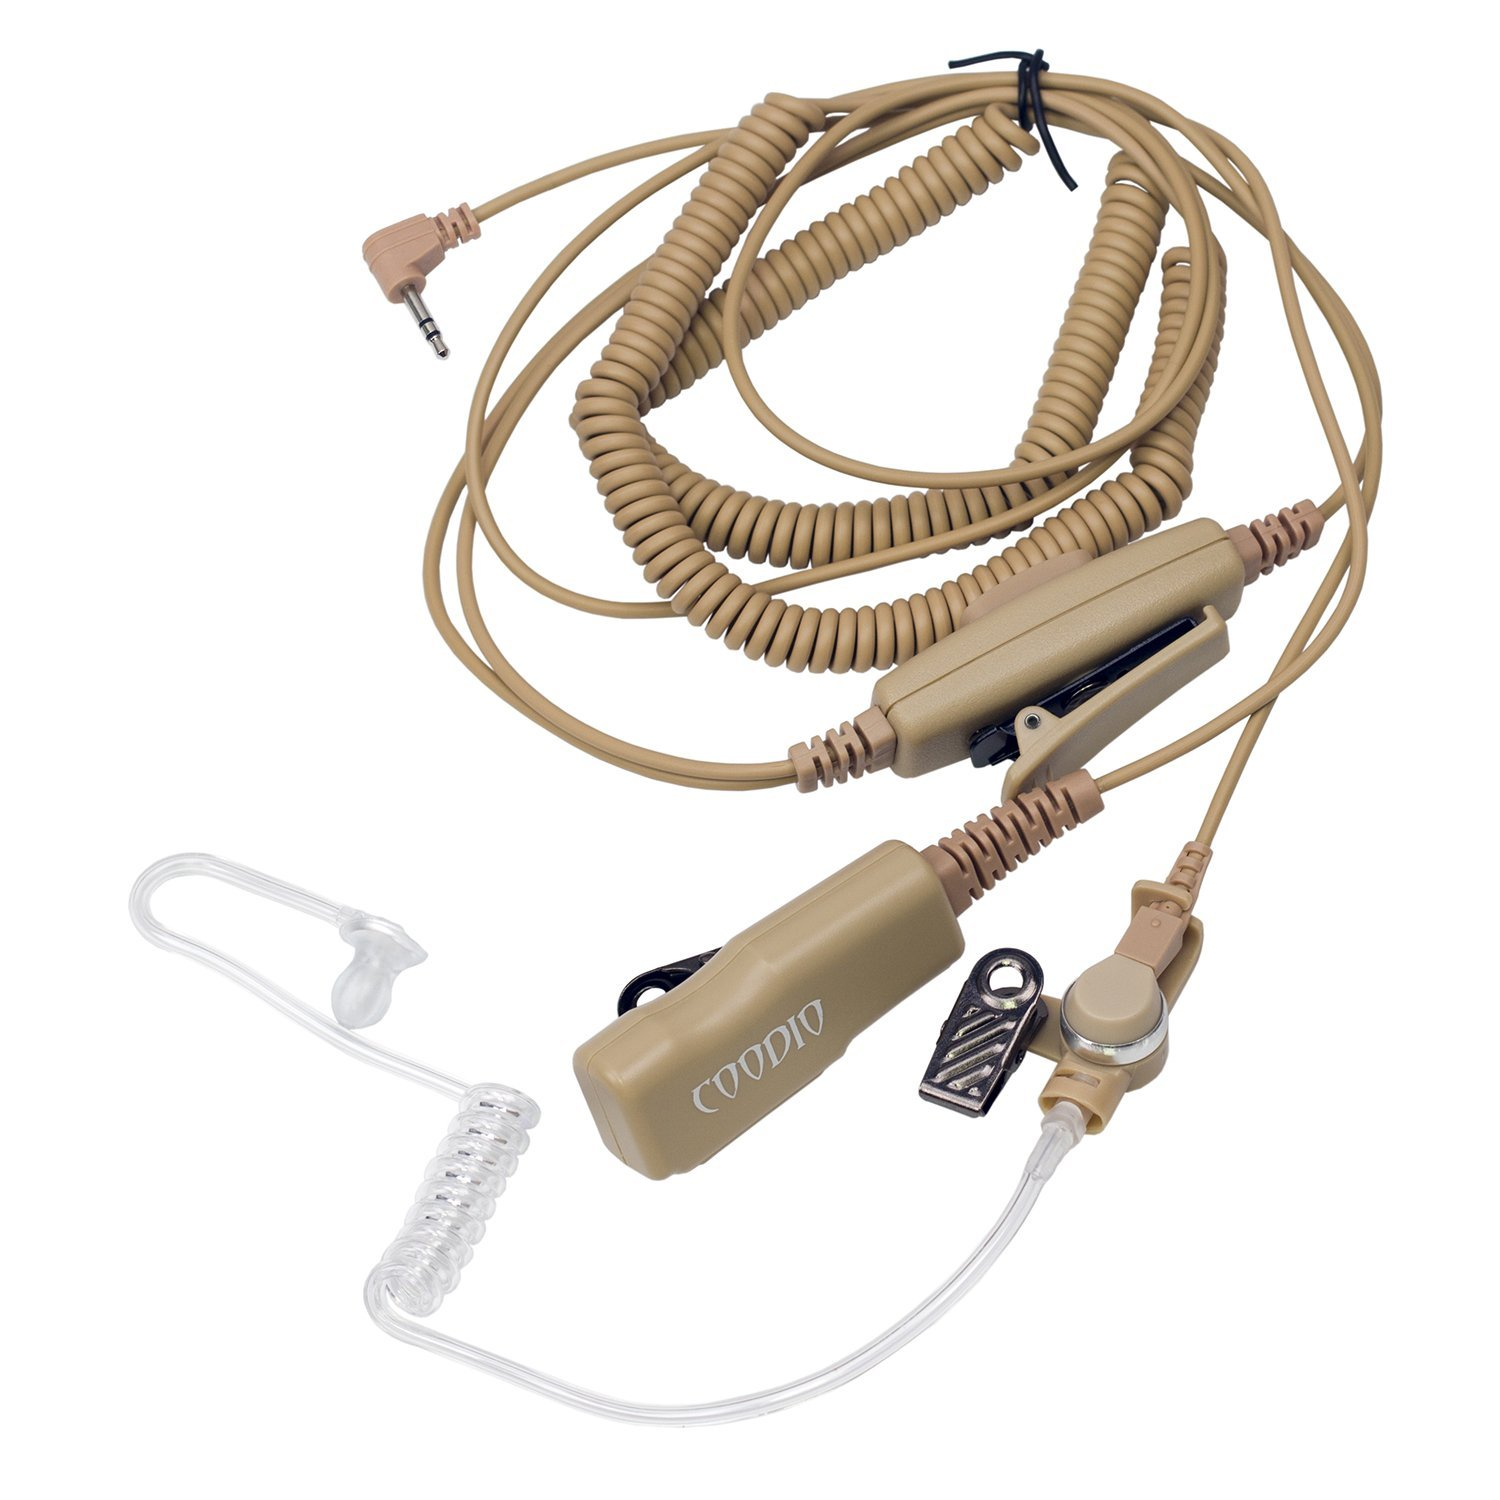 Covert Acoustic Tube Mic Microphone for 1 Pin Motorola Talkabout 2 Way Radio Walkie Talkie Double PTT Bodyguard FBI Beige Coodio Superior Surveillance Earpiece Security Headset